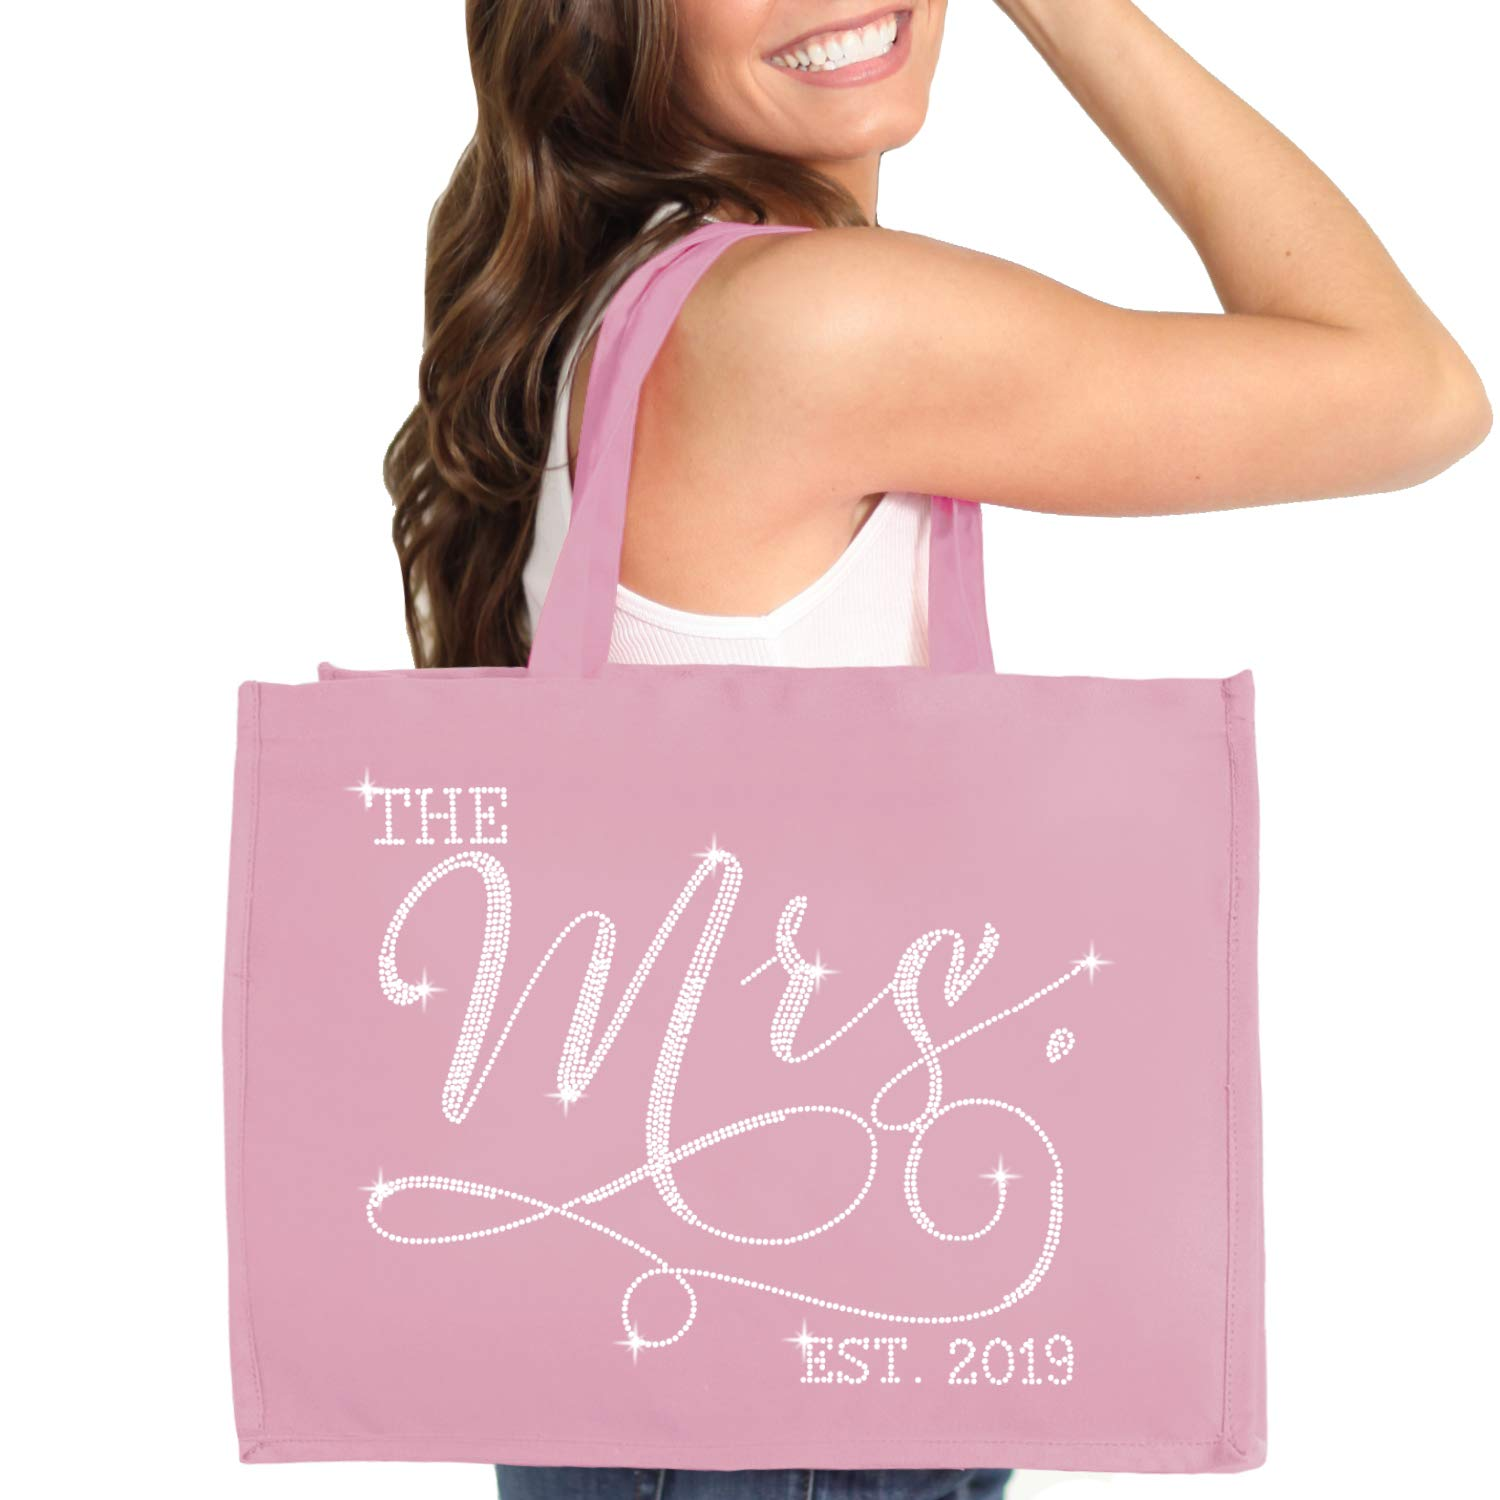 Bride Tote - Crystal The Mrs. EST 2019 Jumbo Canvas Tote Bag - Bridal Tote For the Bride to Be - Dusty Blush Pink Tote(Mrs 2019 RS) DBP by RhinestoneSash